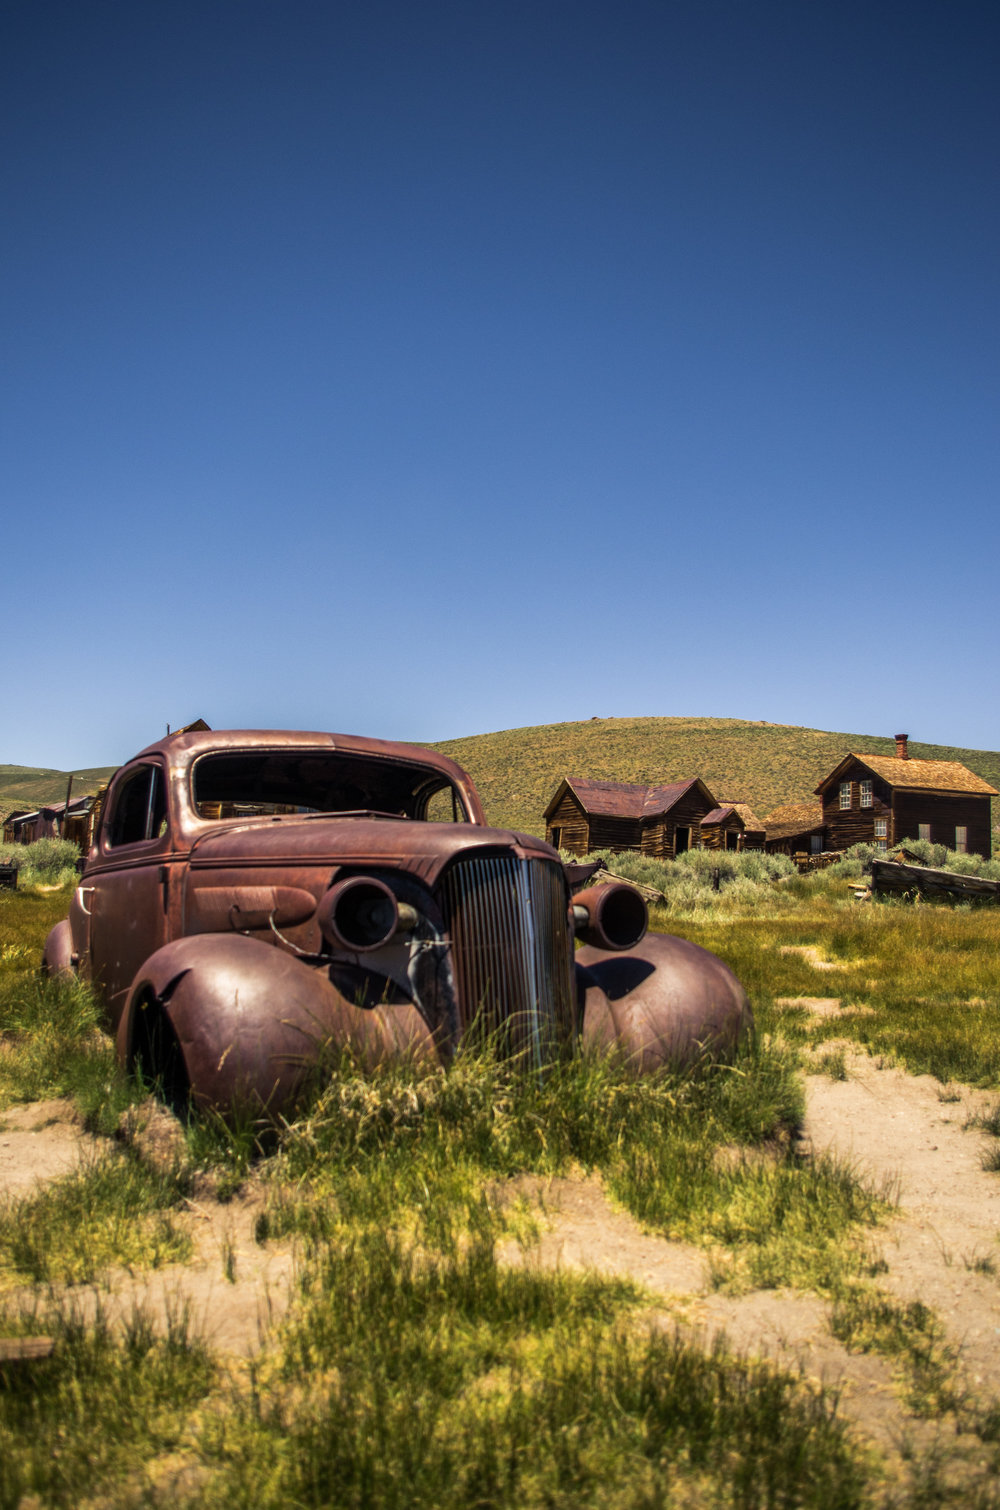 The Ghost Town of Bodie. Bodie, California